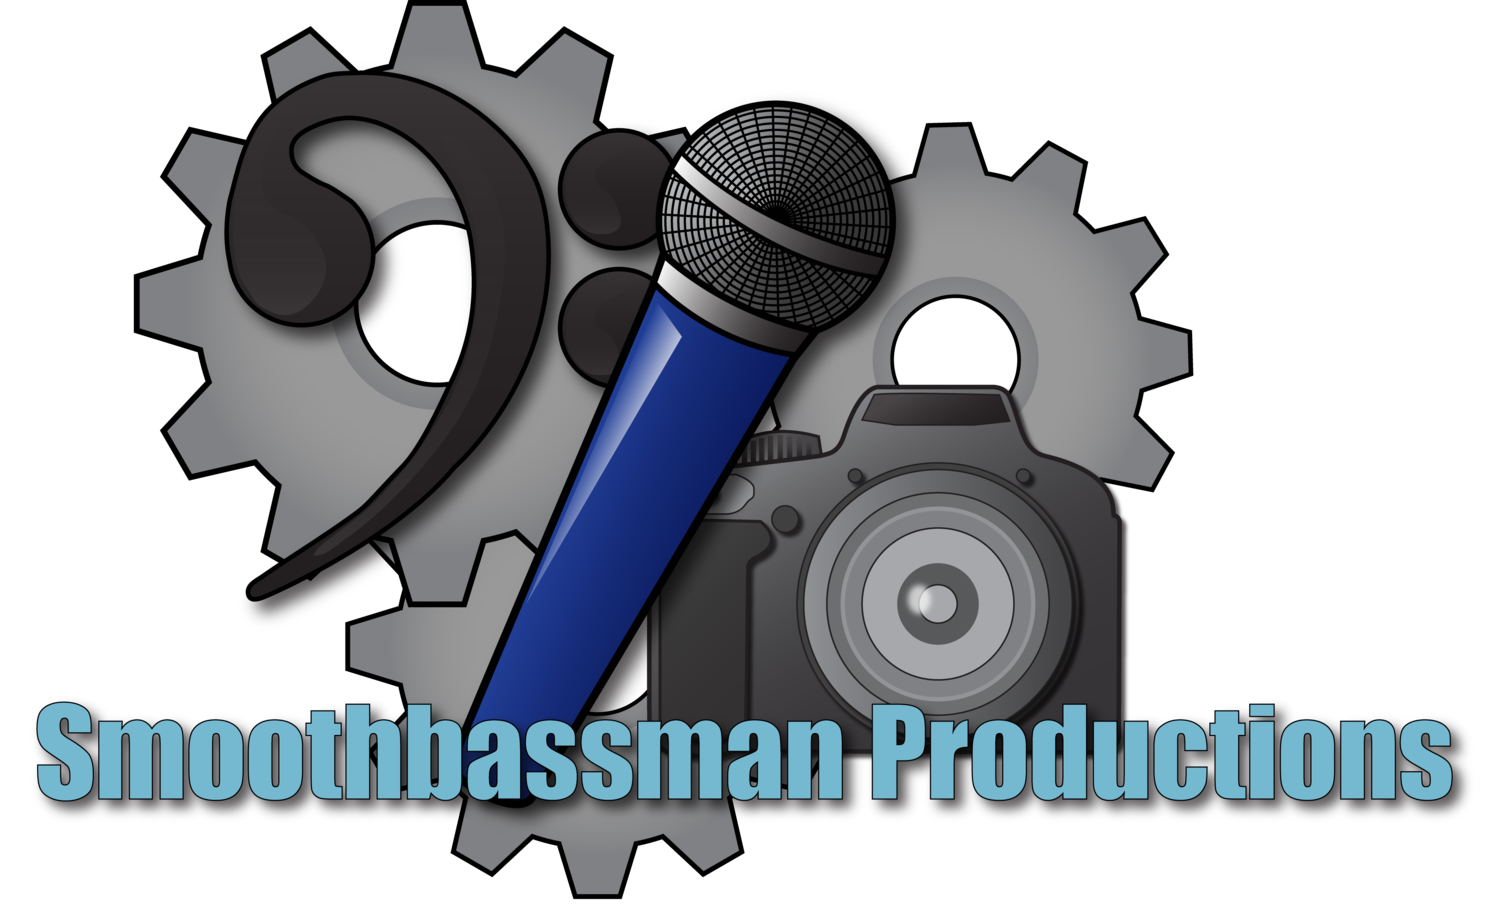 Smoothbassman Productions